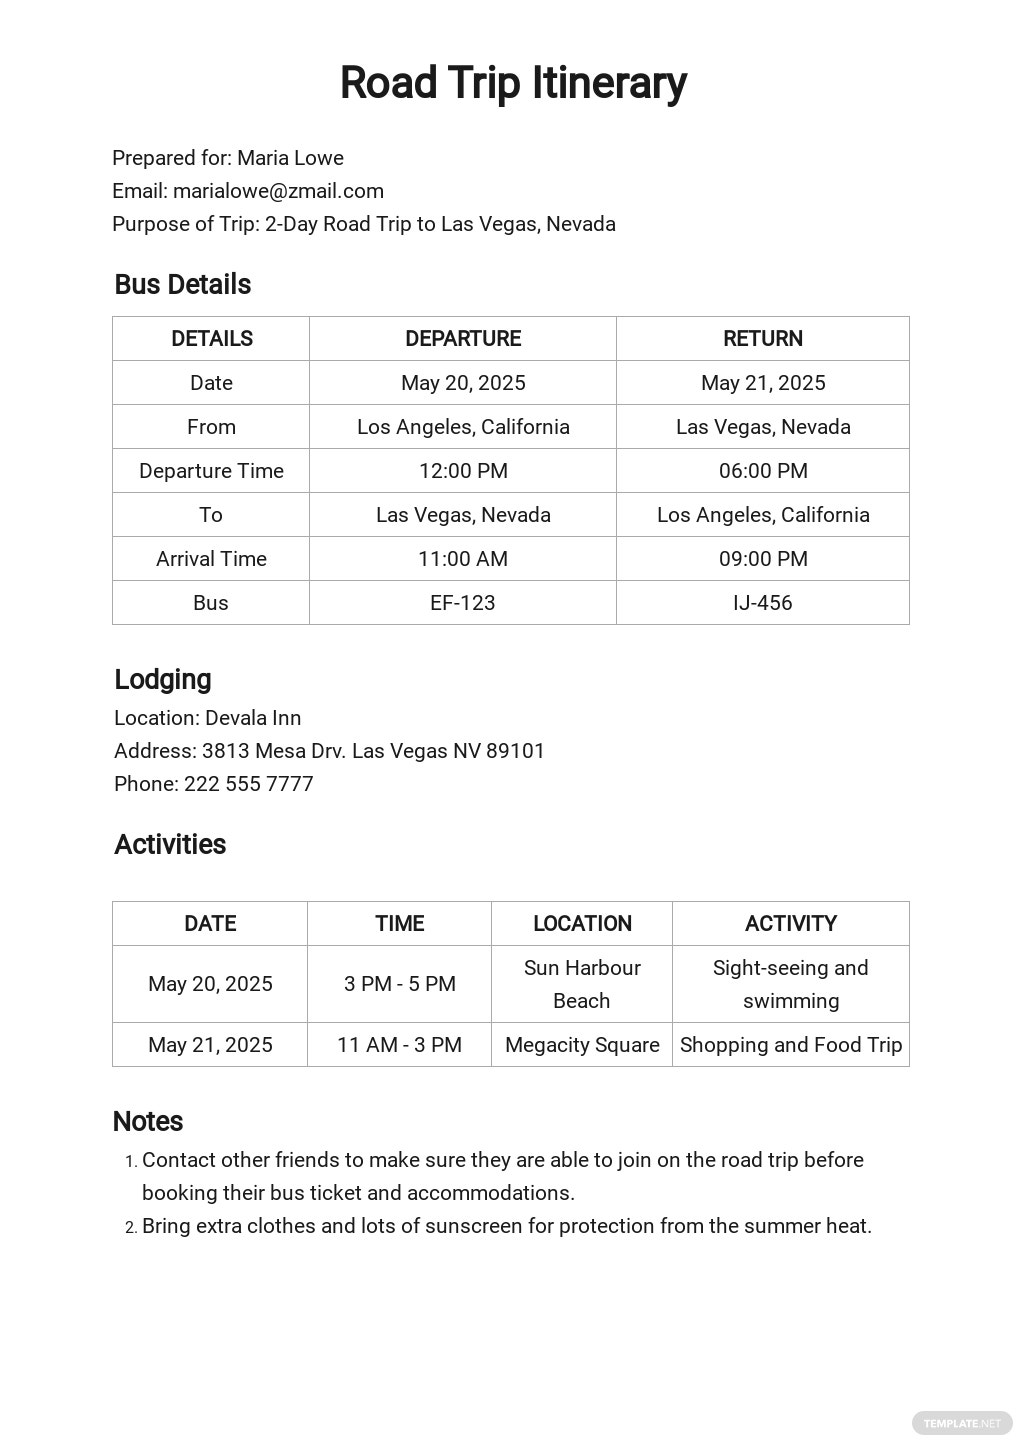 Road Trip Itinerary Template